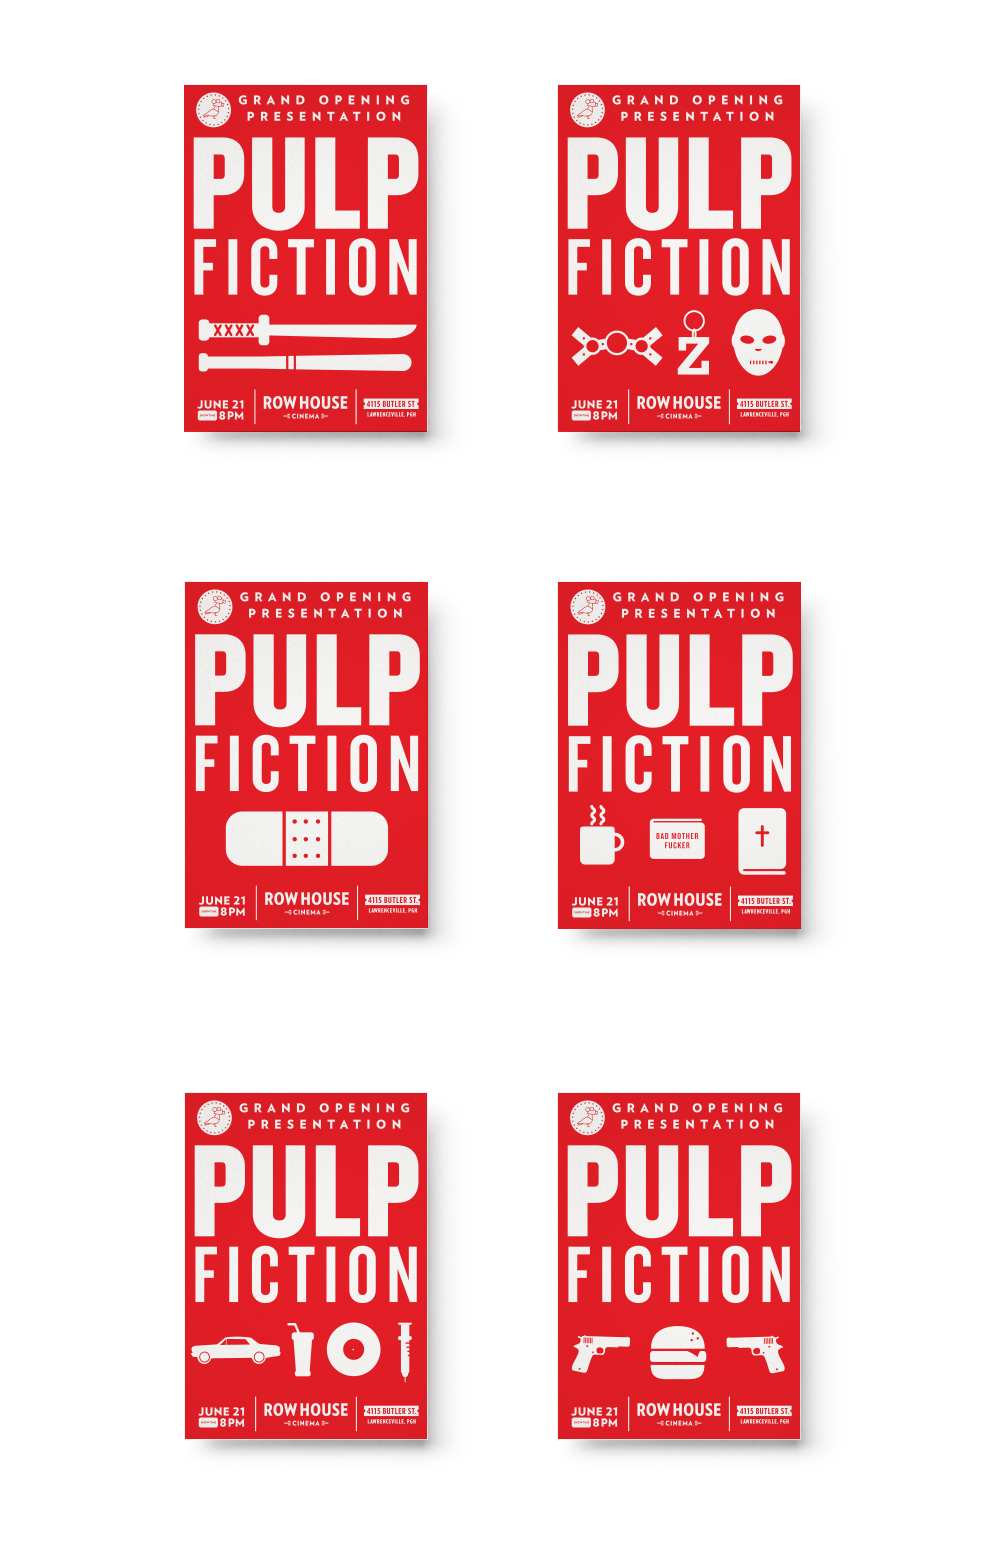 Arts and Entertainment_Row-House-Cinema_Bootstrap Design Co_Plup-Fiction-Collateral.png